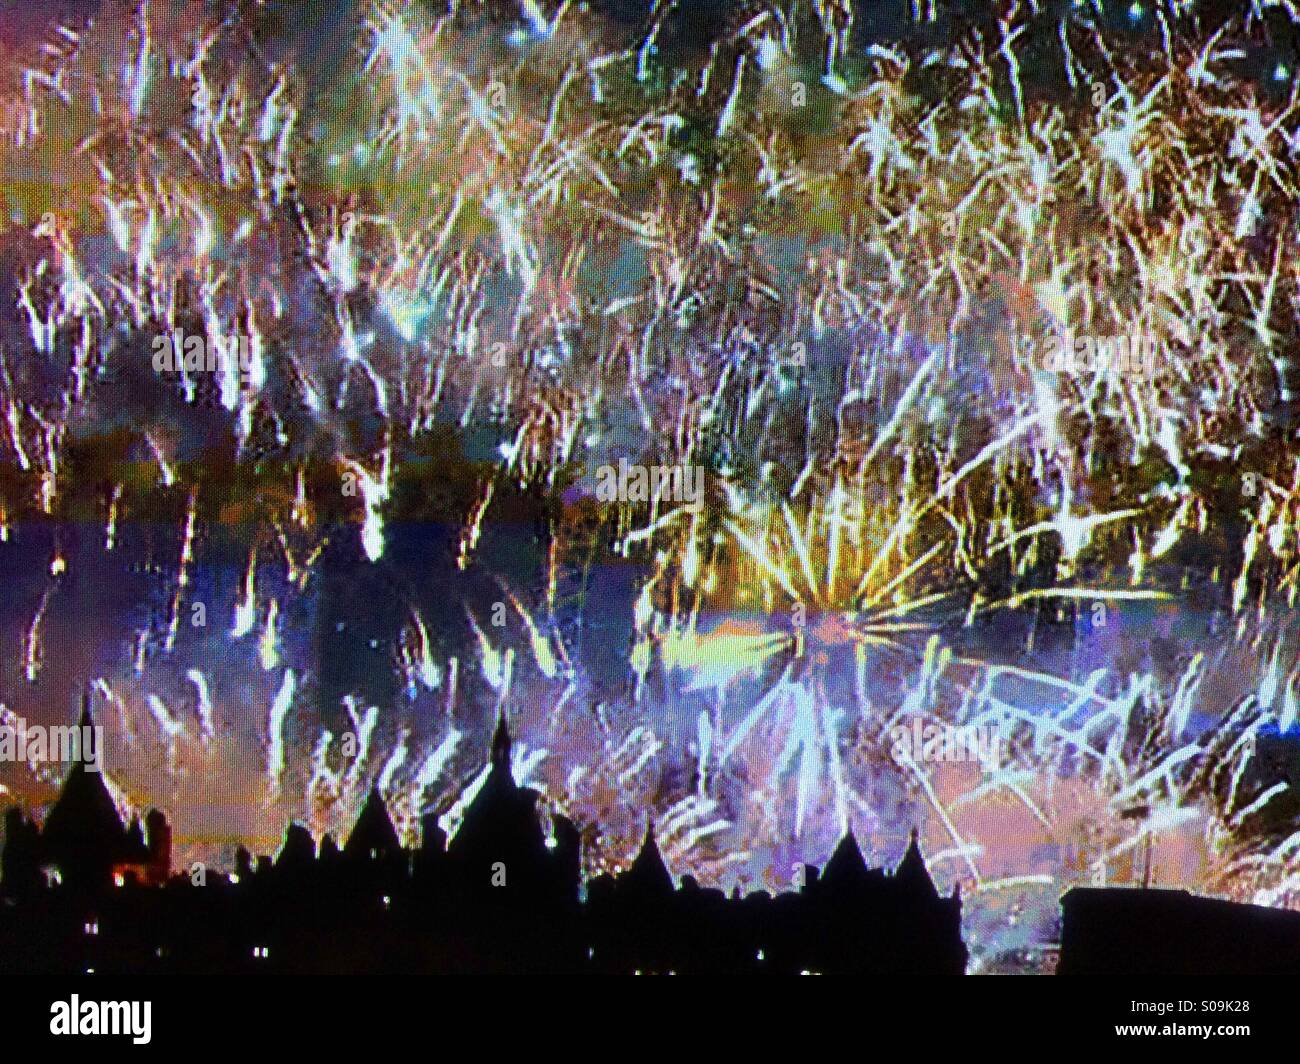 New Years Eve Fire Works London. - Stock Image